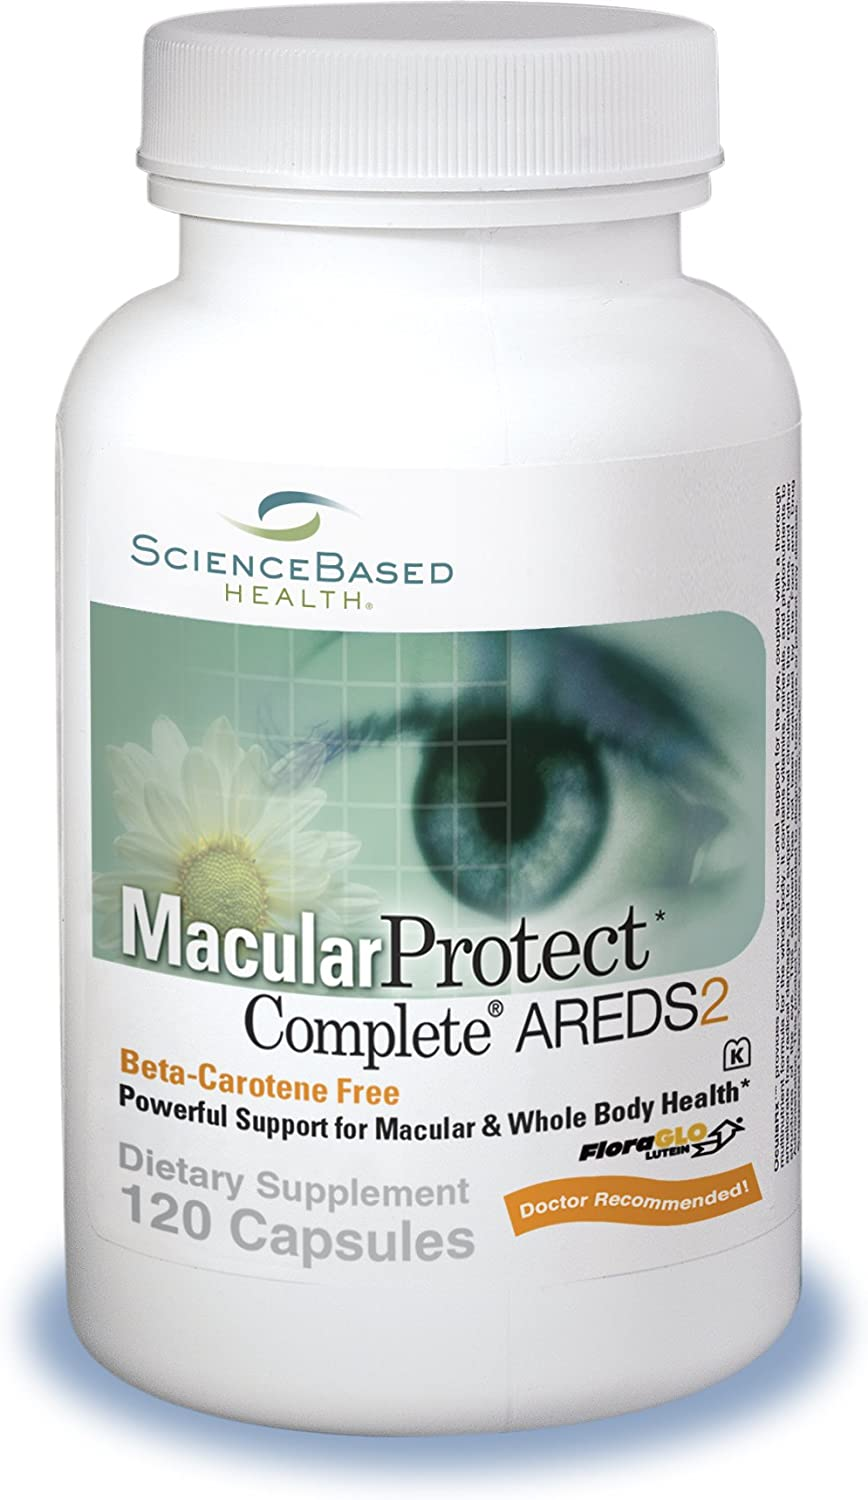 MacularProtect Complete AREDS2 Vitamin Mineral Supplement